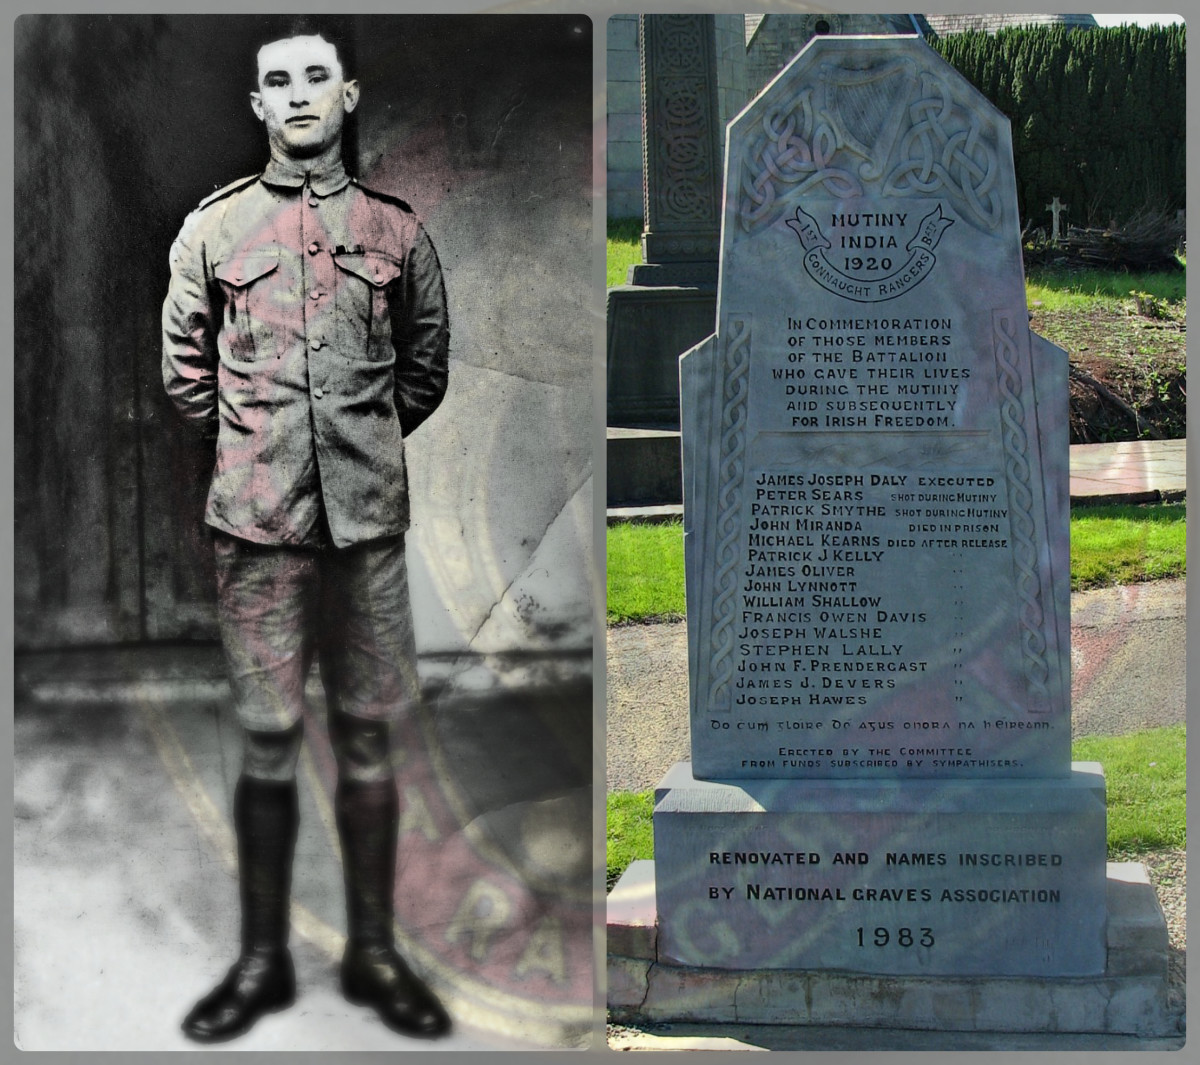 Learn why Irishman James Daly of the Connaught Rangers was executed in India in 1920 for mutiny.